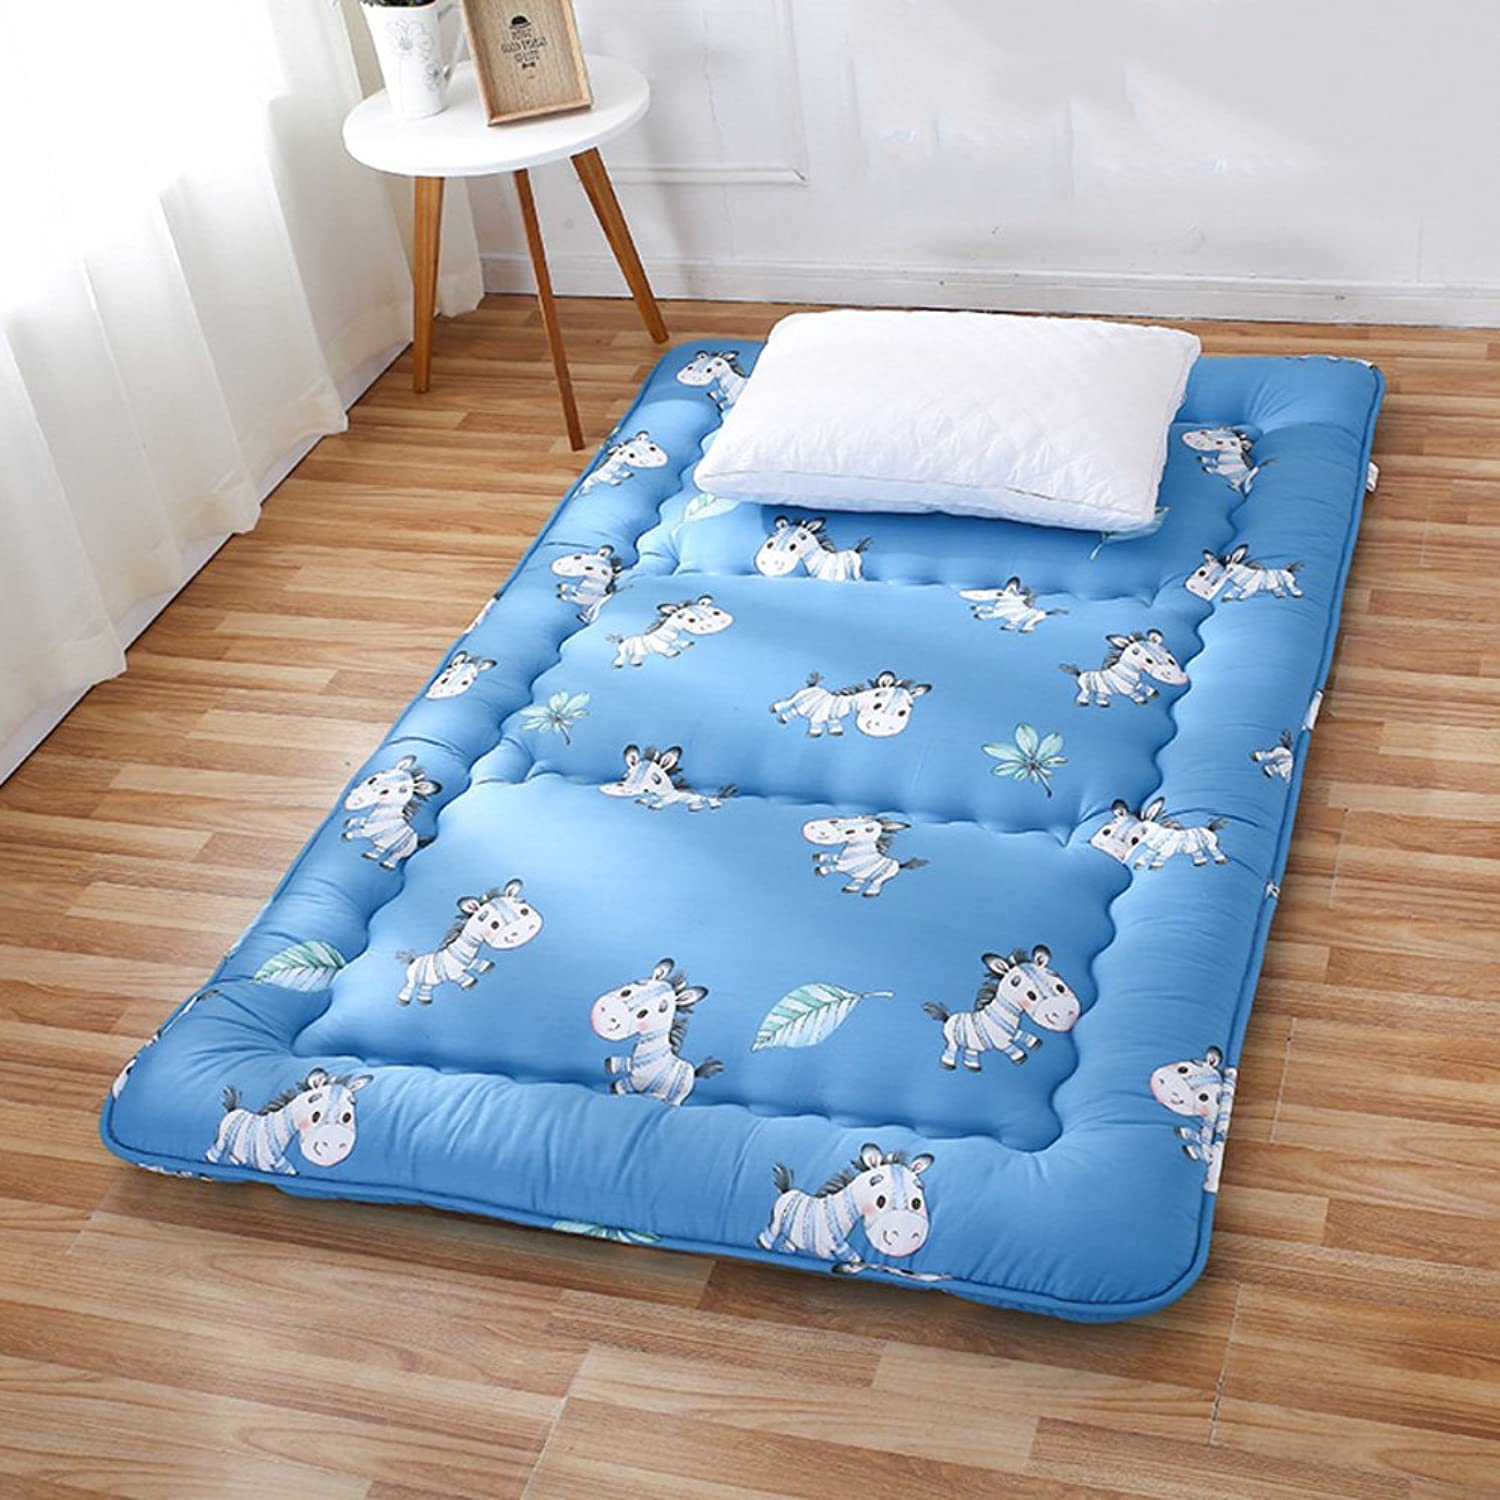 Foldable Thickening Tatami Floor Mattress,Hypoallergenic Tatami mat Mattress Dormitory Single Bed Mattress Cooling Mattress Topper-B 100x200cm(39x79inch)